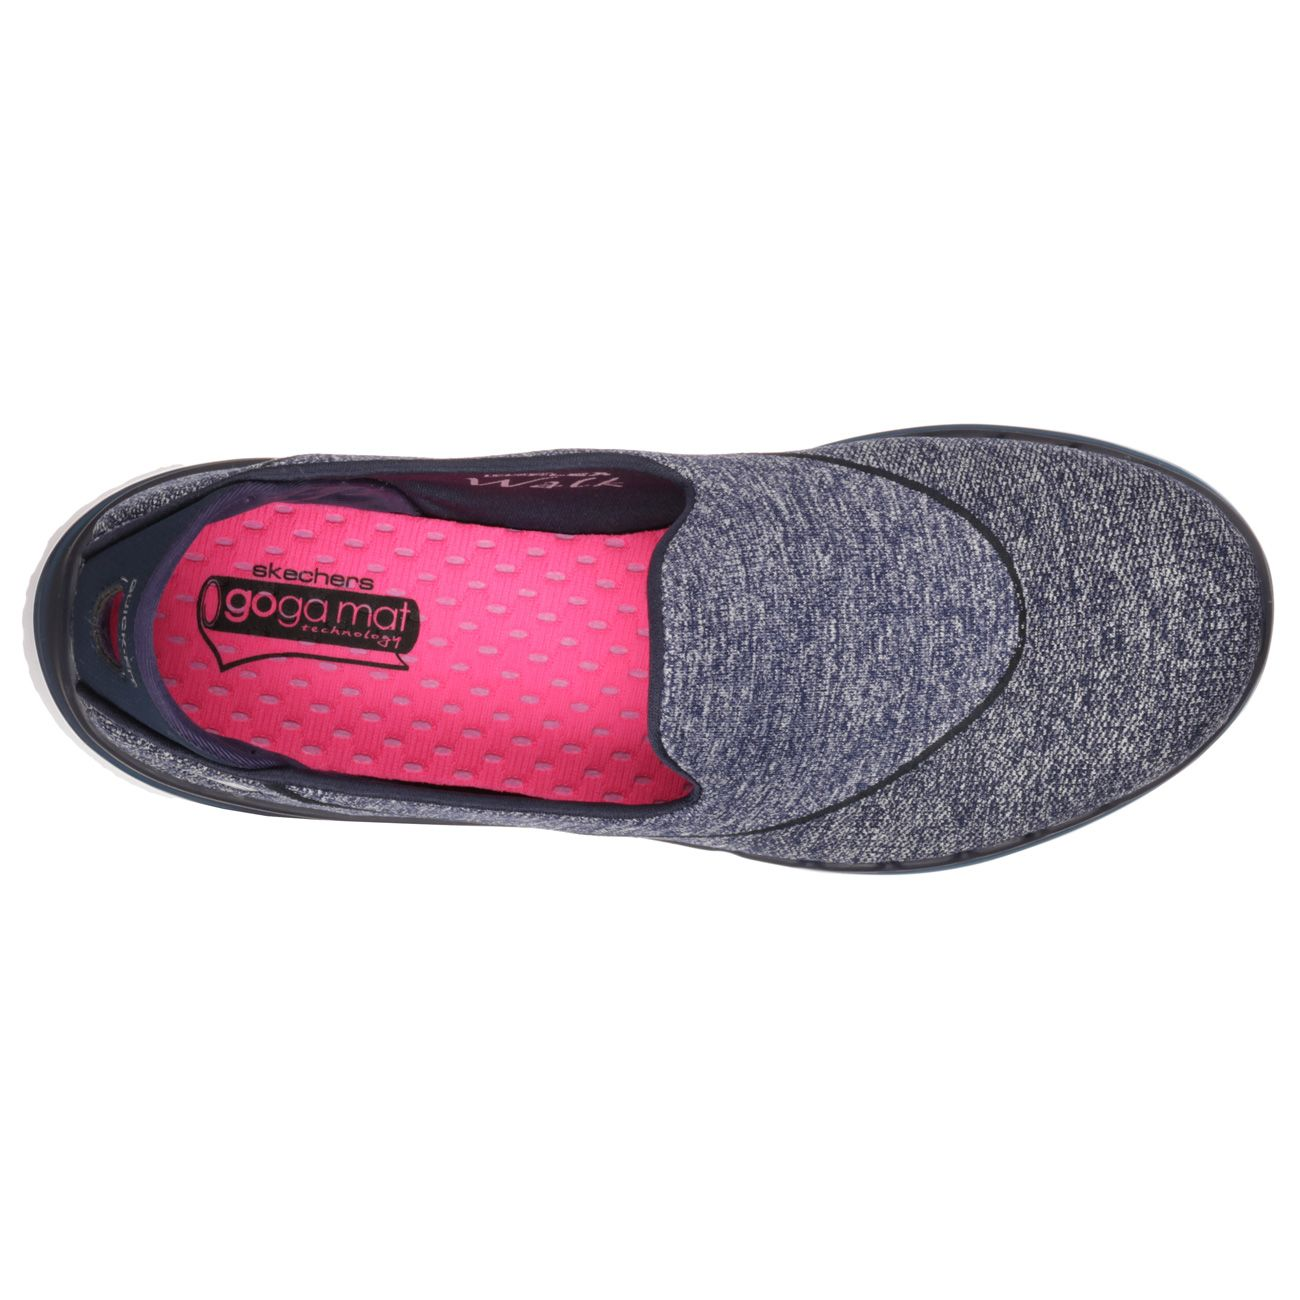 Skechers Go Flex Ladies Walking Shoes Sweatband Com